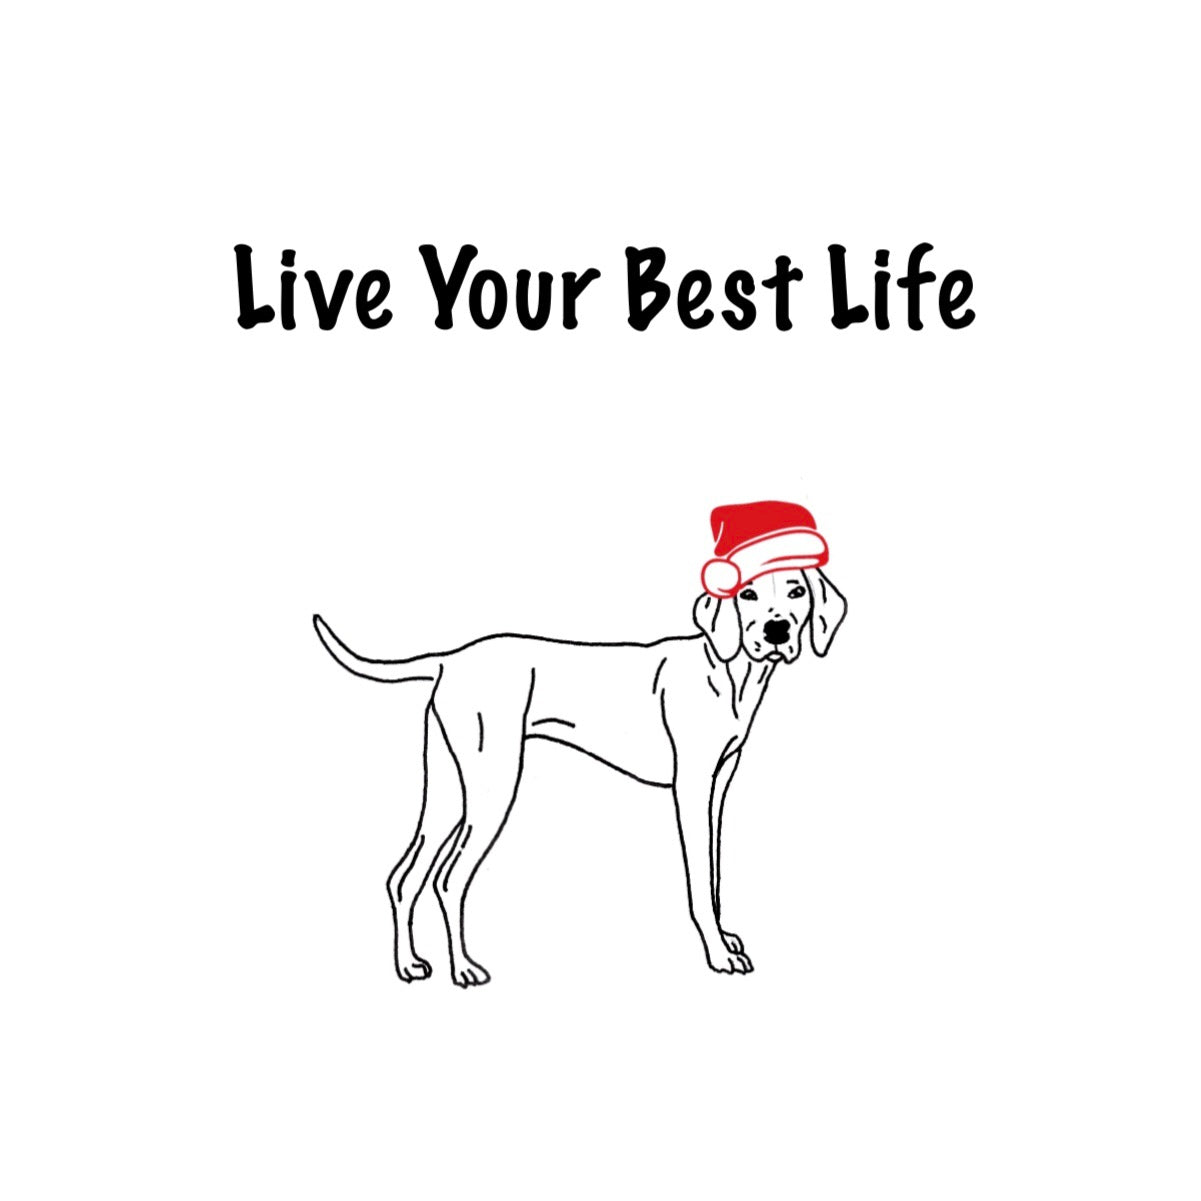 Live Your Best Life - Merry Christmas Greeting Card